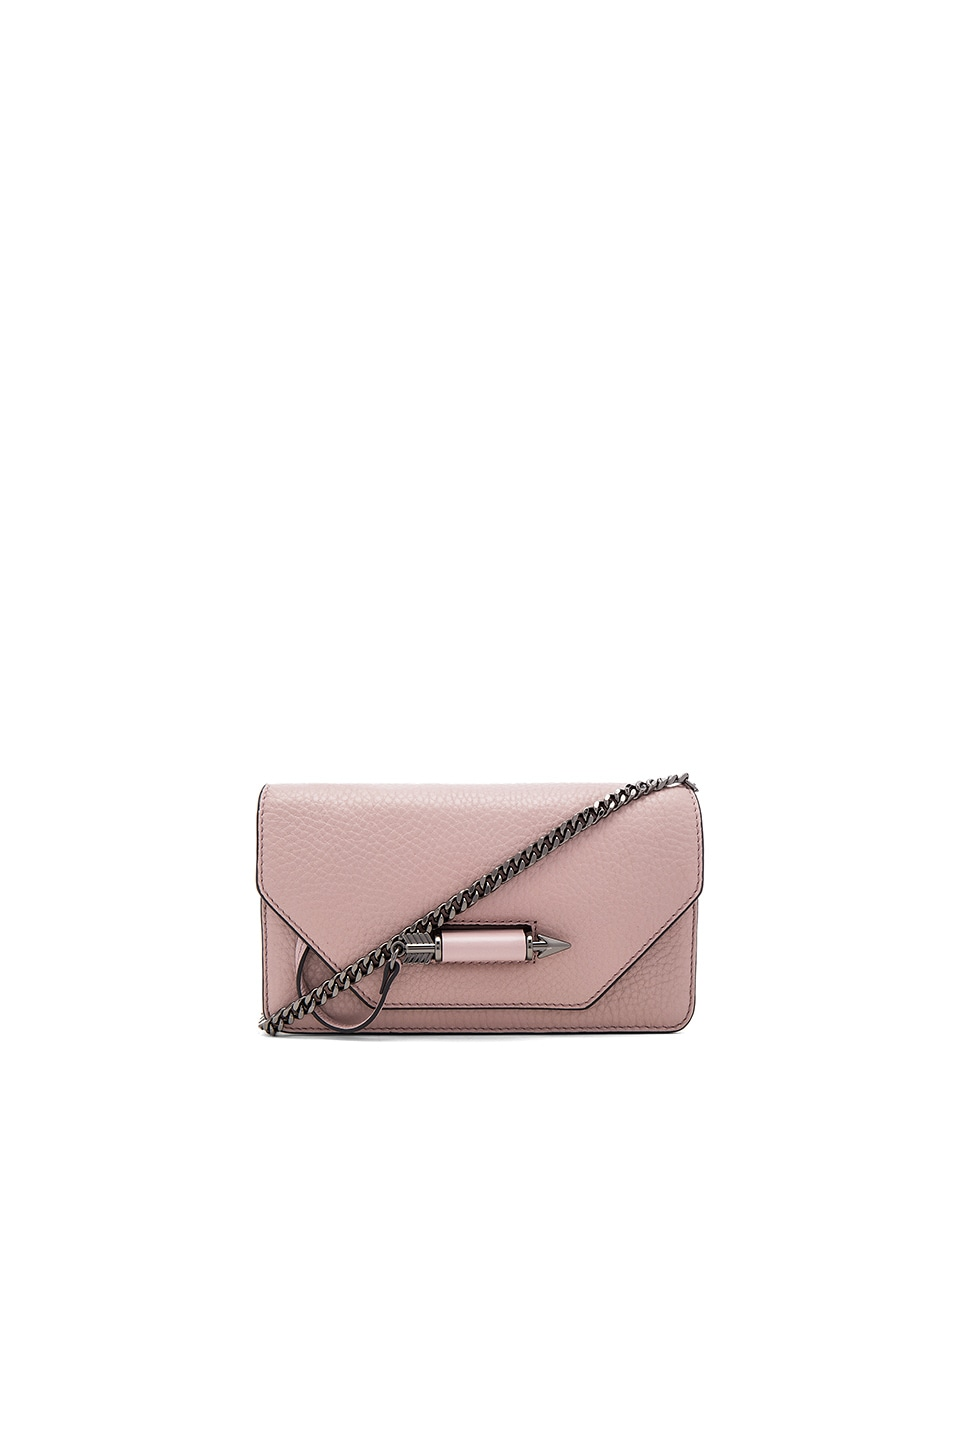 Mackage Zoey Mini Crossbody in Blush & Gunmetal